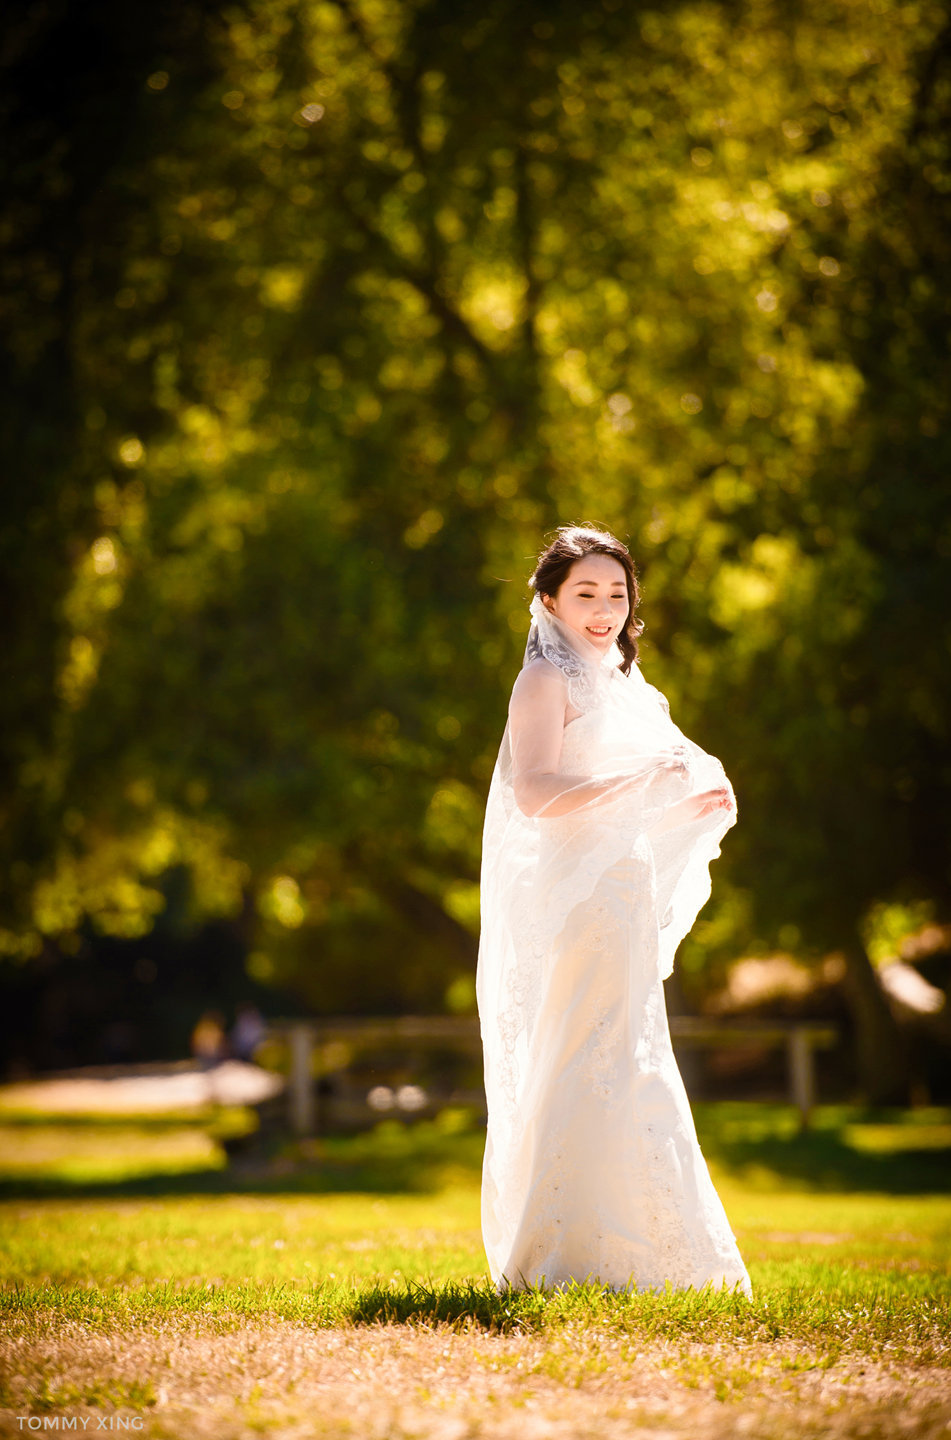 San Francisco Pre Wedding 美国旧金山湾区婚纱照 摄影师Tommy Xing Photography 04.jpg